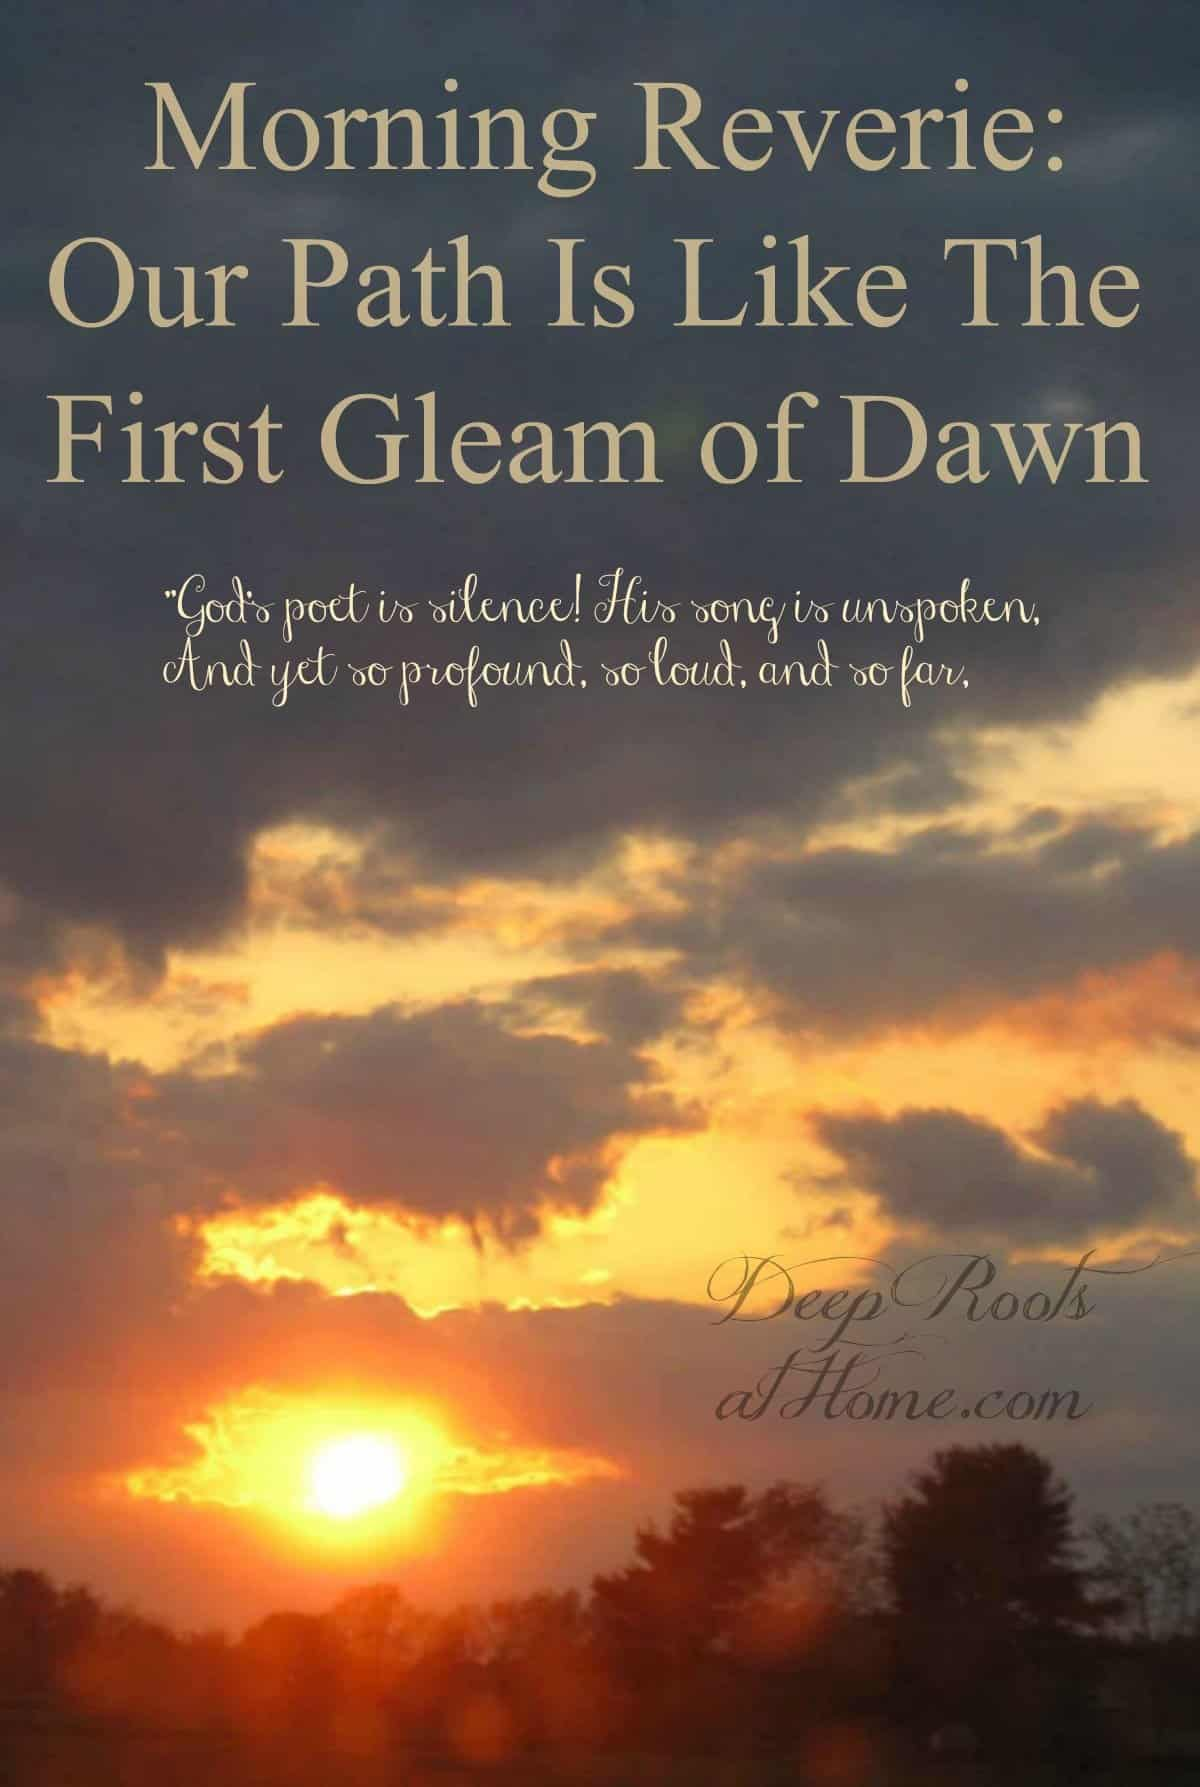 Morning Reverie: Our Path Is Like The First Gleam of Dawn, sunrise